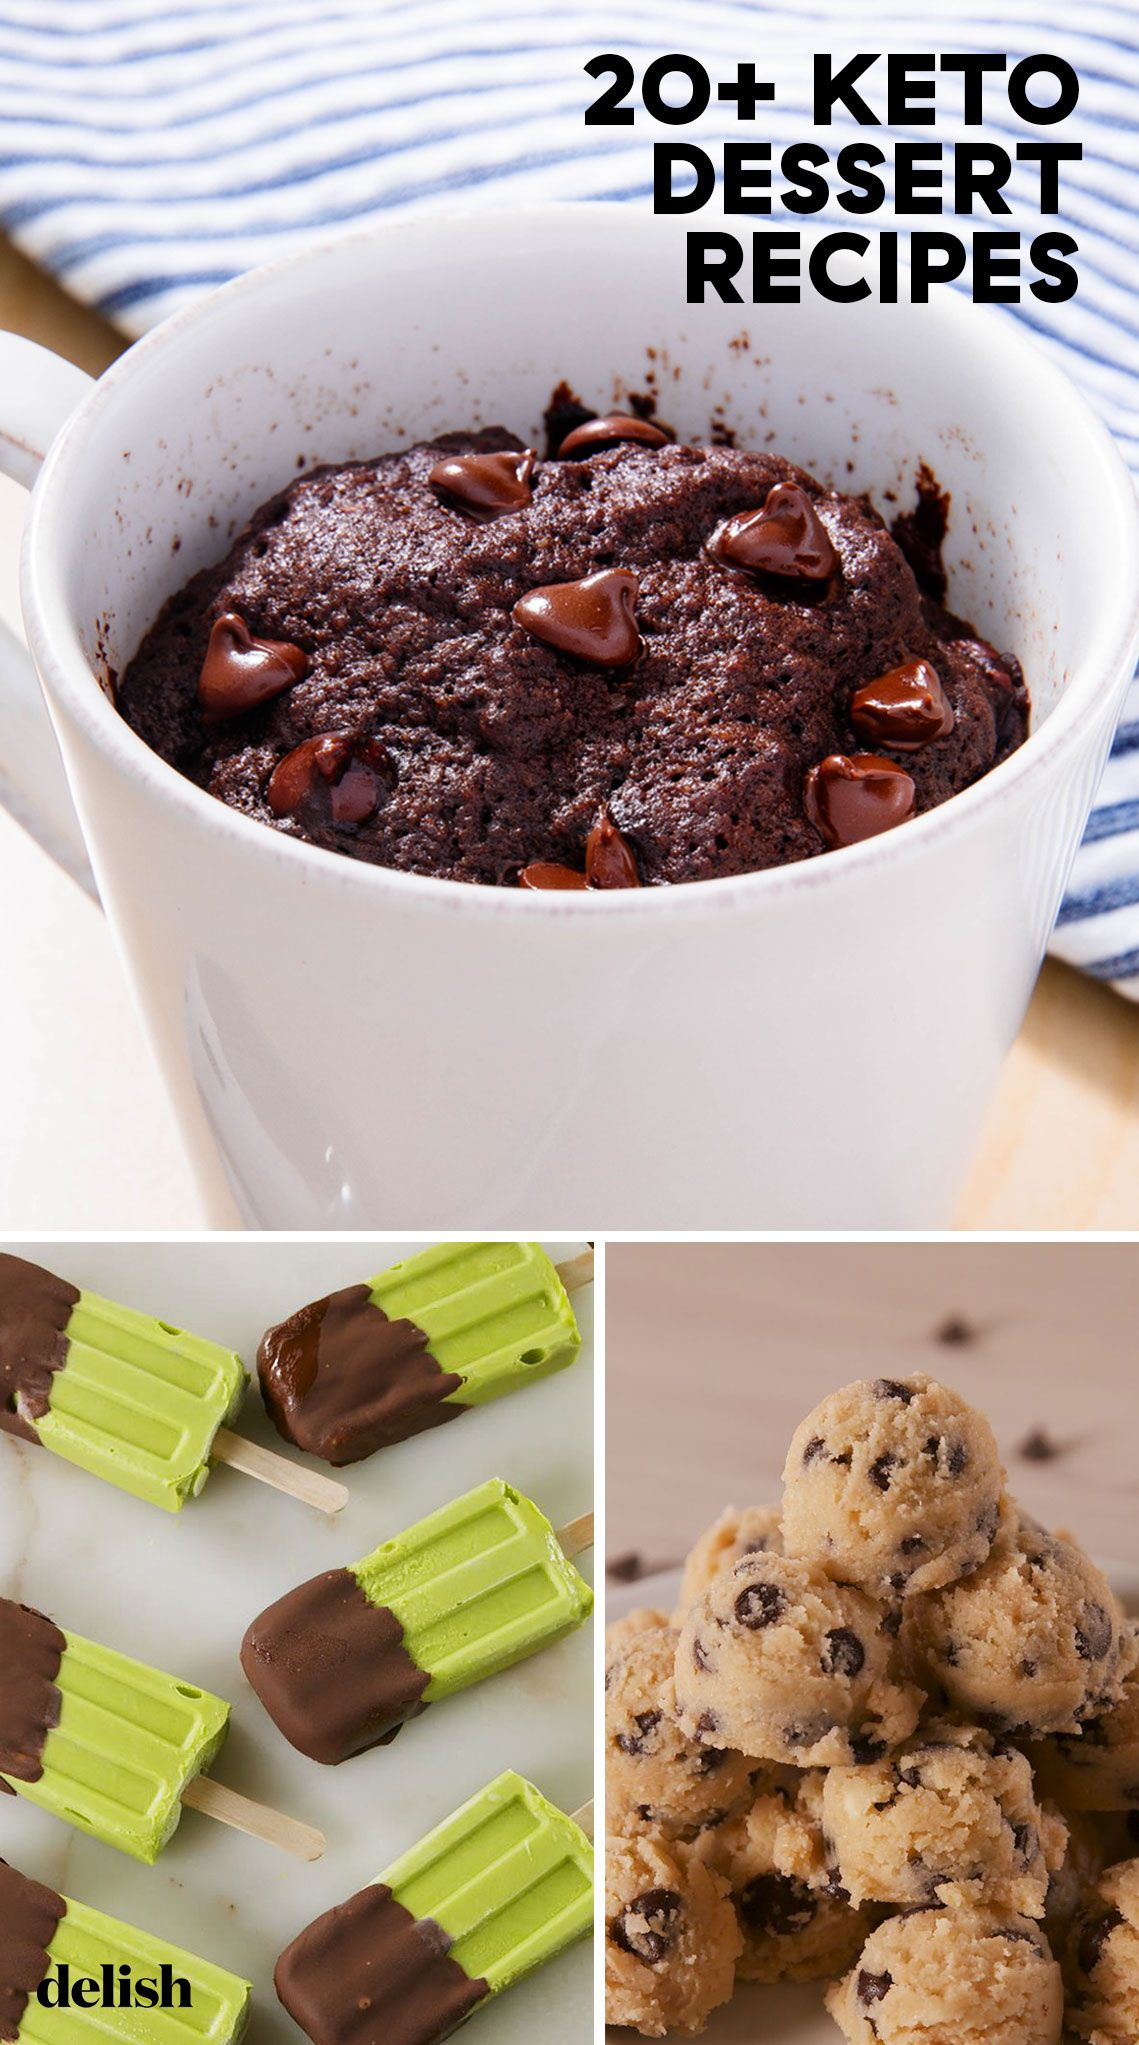 Keto-Friendly Dessert Recipes Coupon June 2020